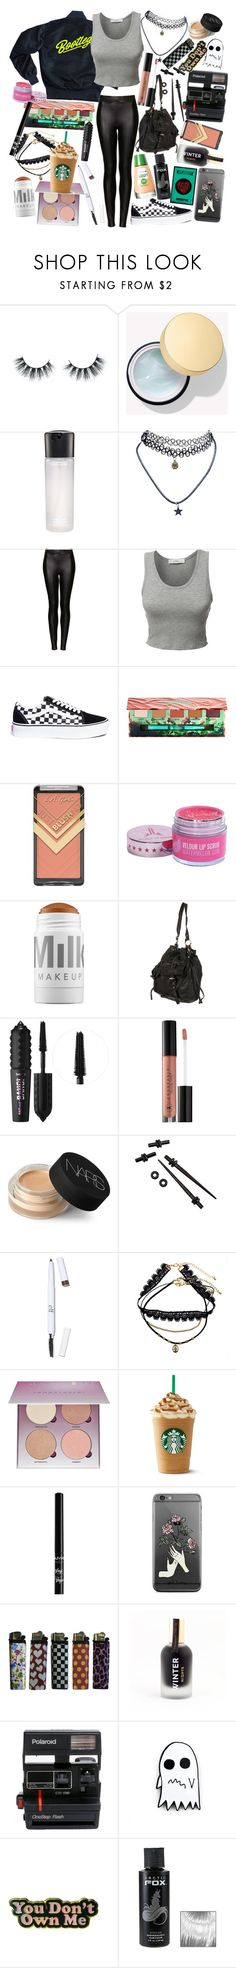 """I resent the party scene with a part of me that's hard to see, it's turned my starry friends to uninspired's lacking symmetry"" by thelyricsmatter ❤ liked on Polyvore featuring Unicorn Lashes, MAC Cosmetics, Wet Seal, Topshop, LE3NO, Vans, Urban Decay, MILK MAKEUP, Benefit and Anastasia Beverly Hills"